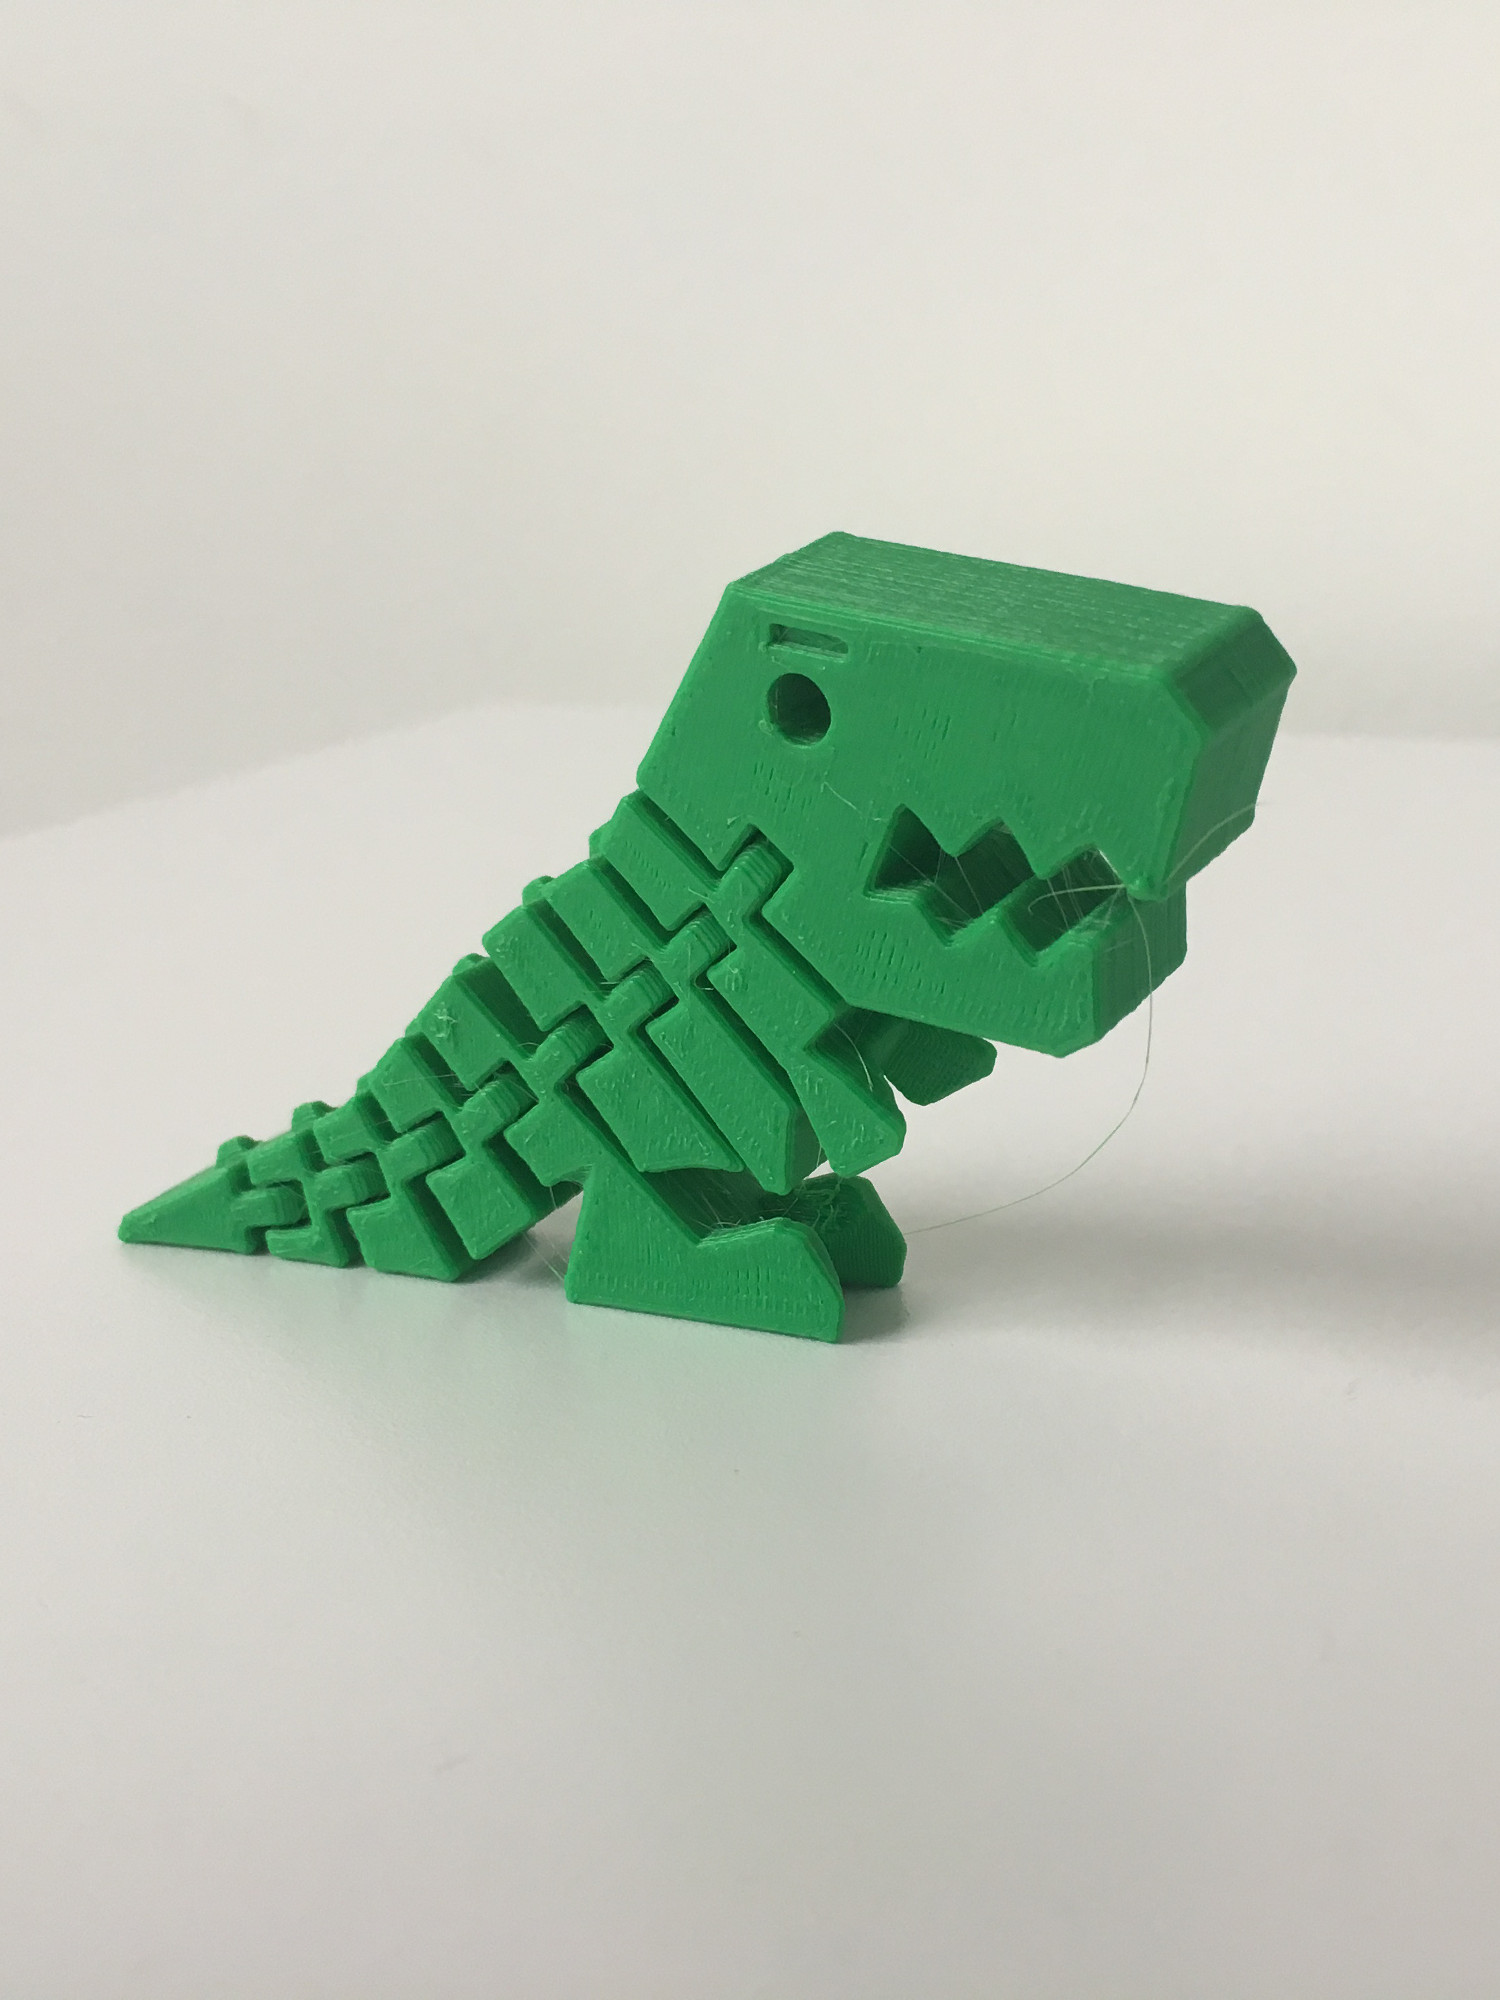 Green 3D printed hinged t-rex toy